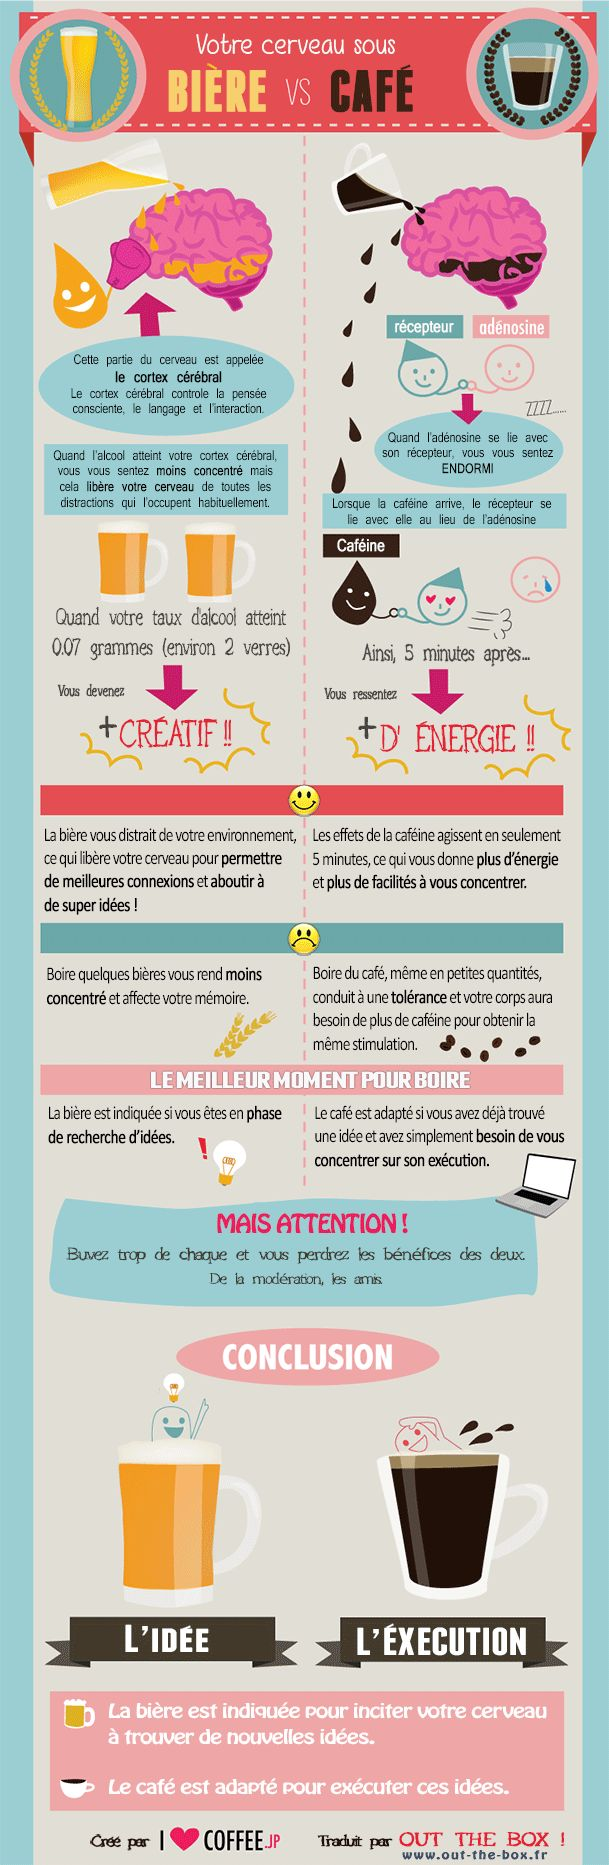 infographie-biere-cafe